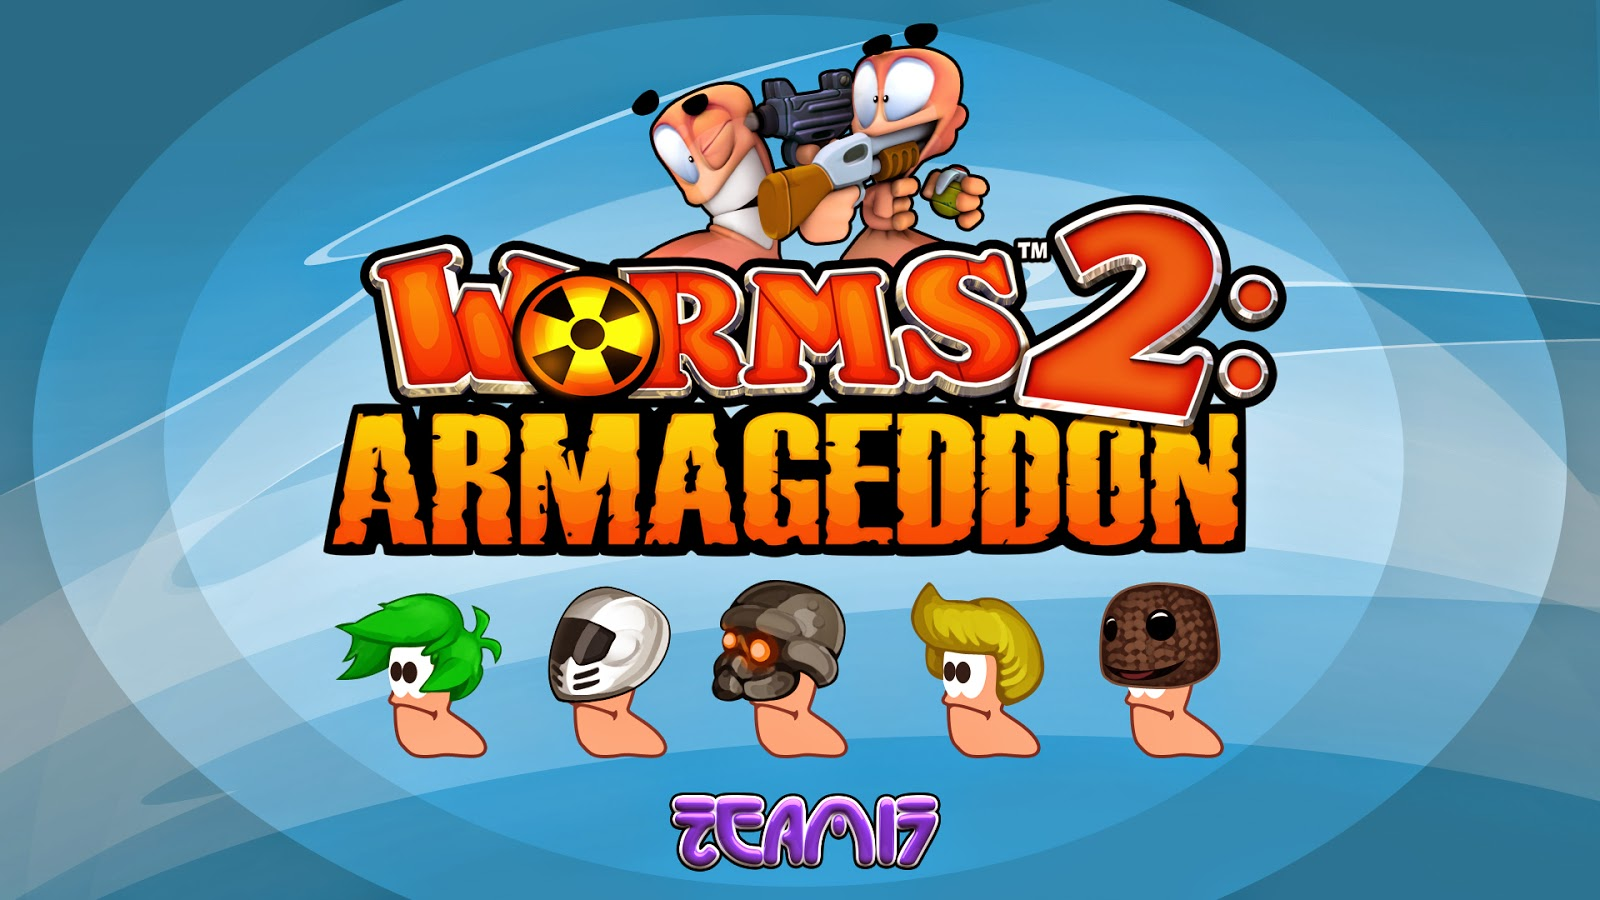 worms 2 armageddon android game free download android battalion